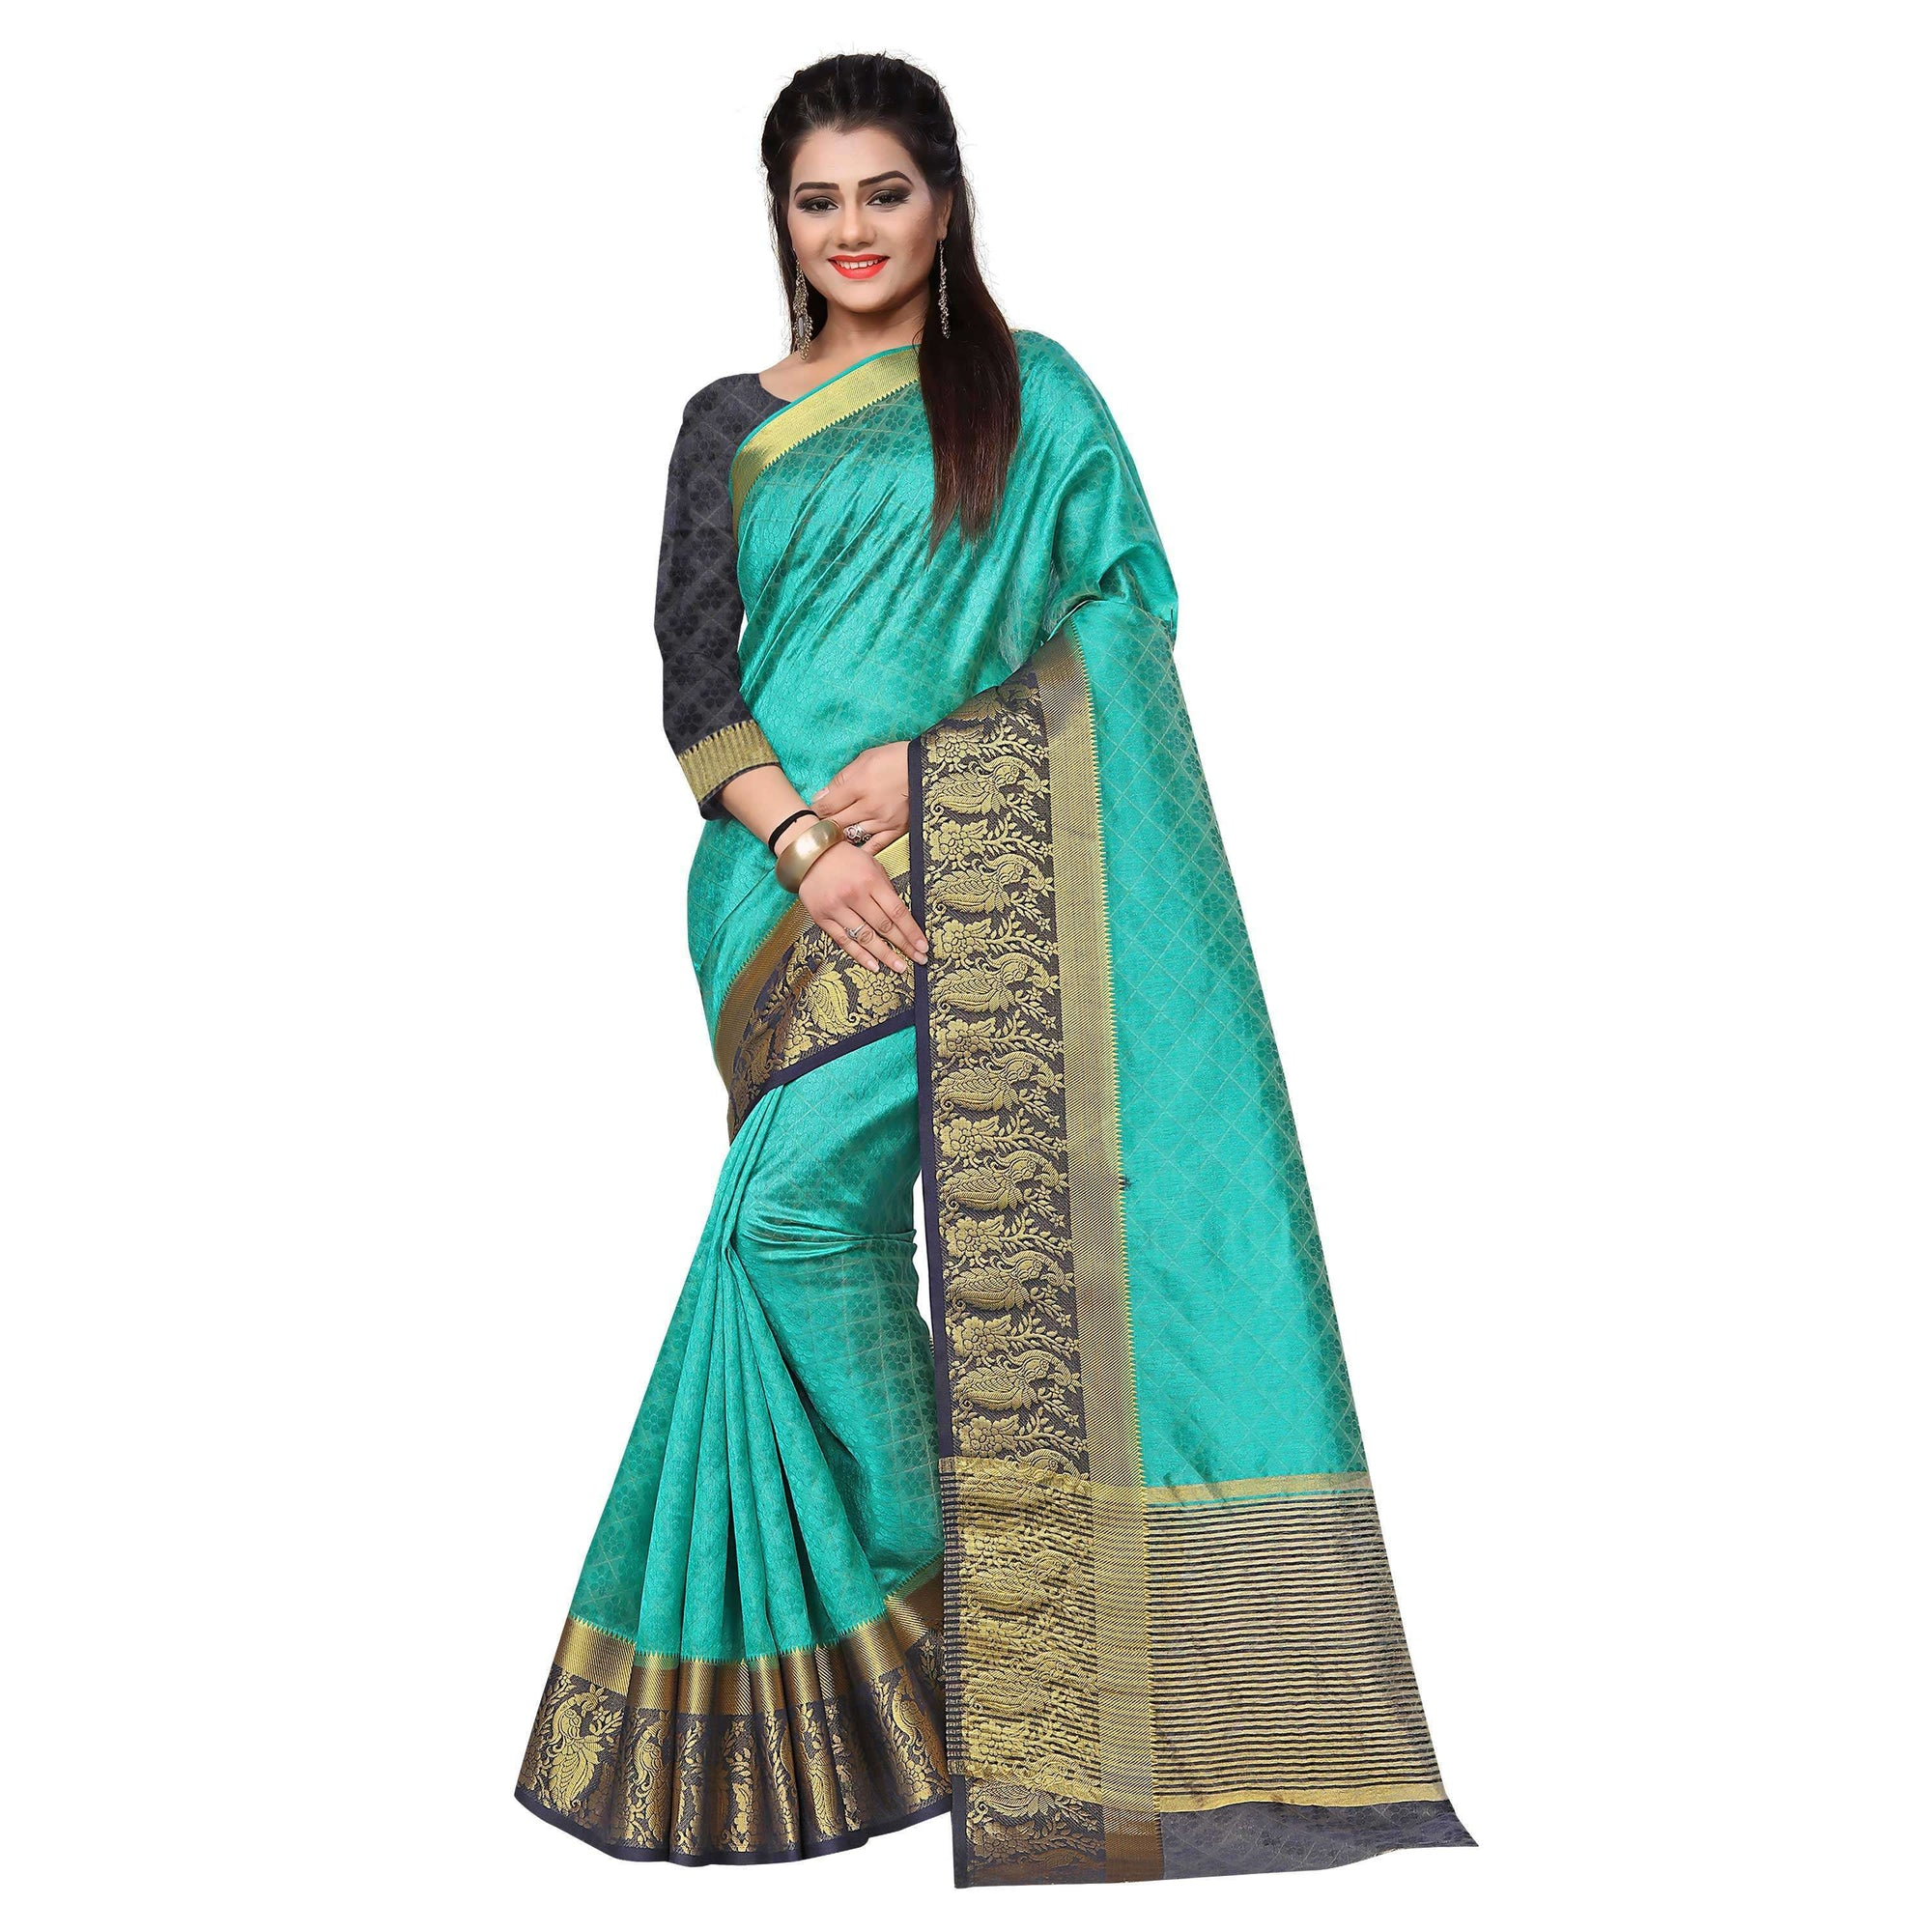 arars kanjivaram art silk saree plain self embose with blouse saree colour safair (327)